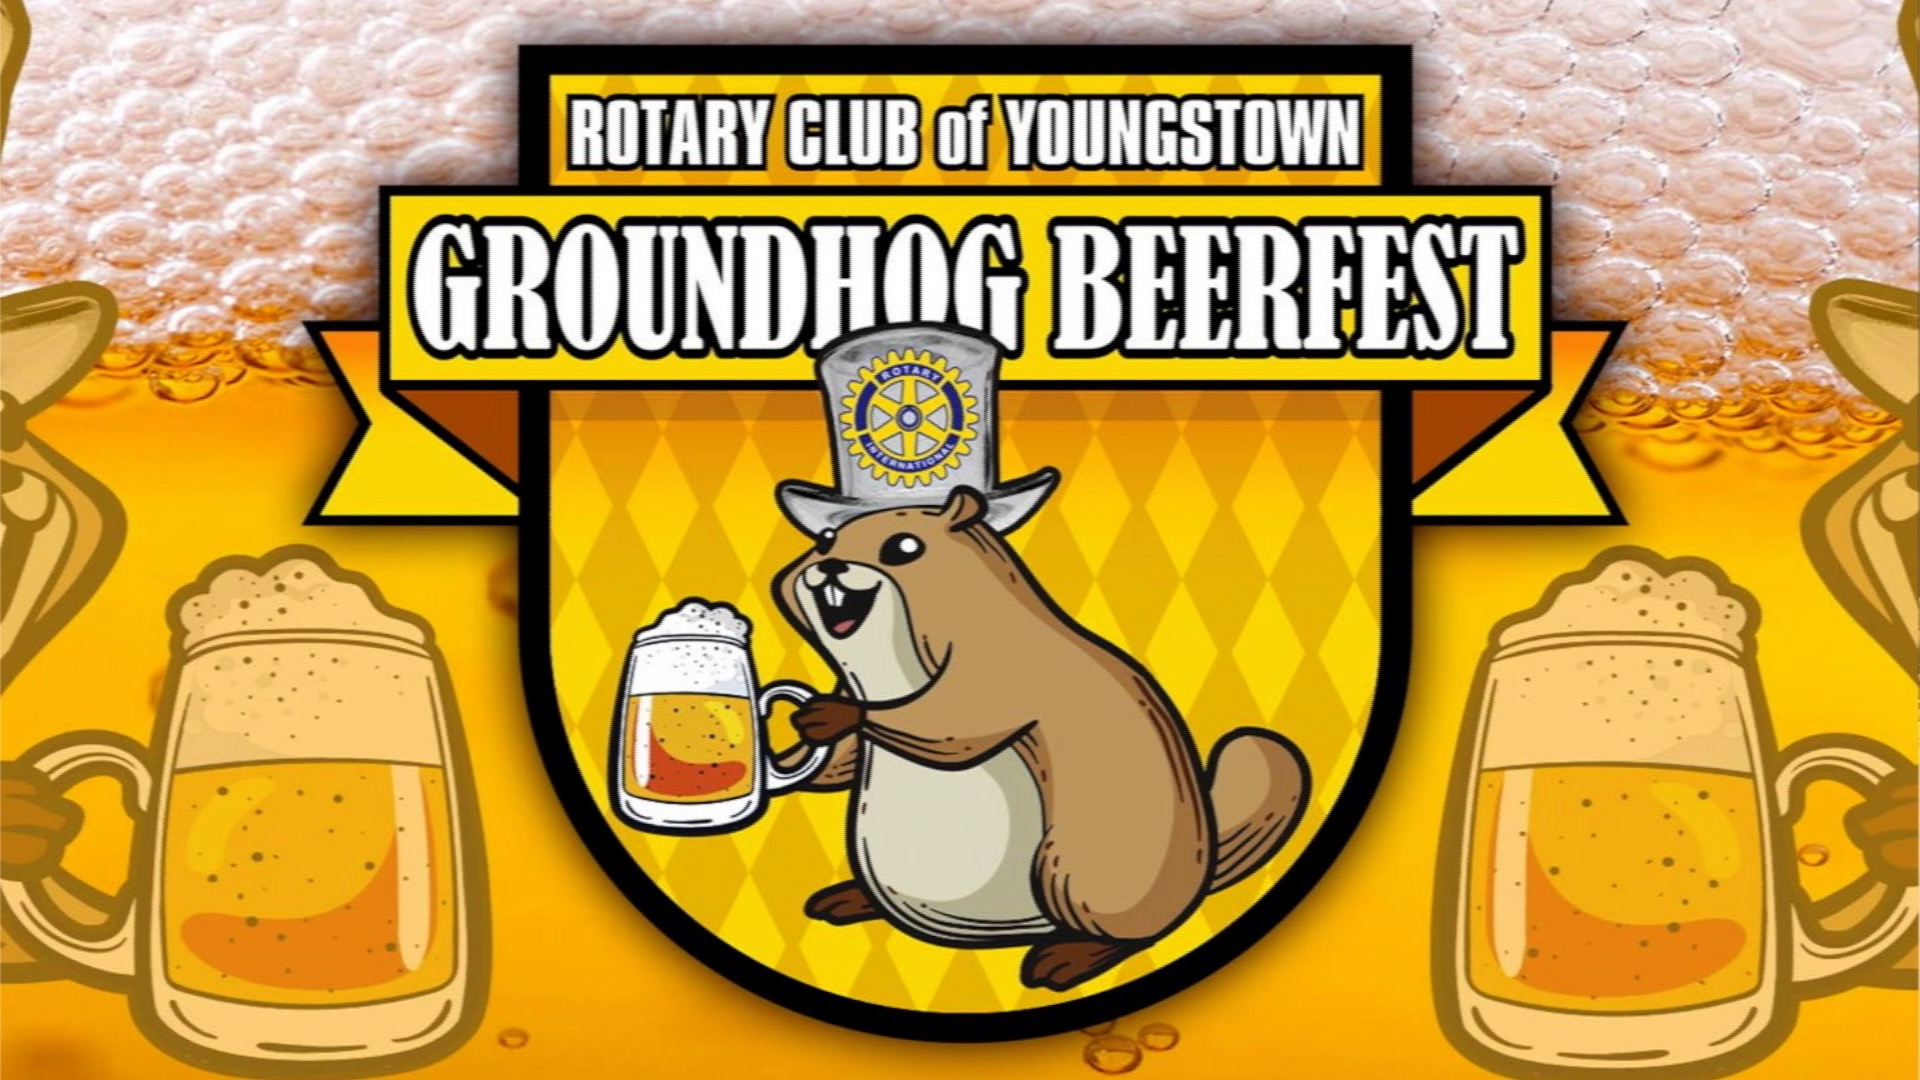 Pair Groundhog Day with Good Beer